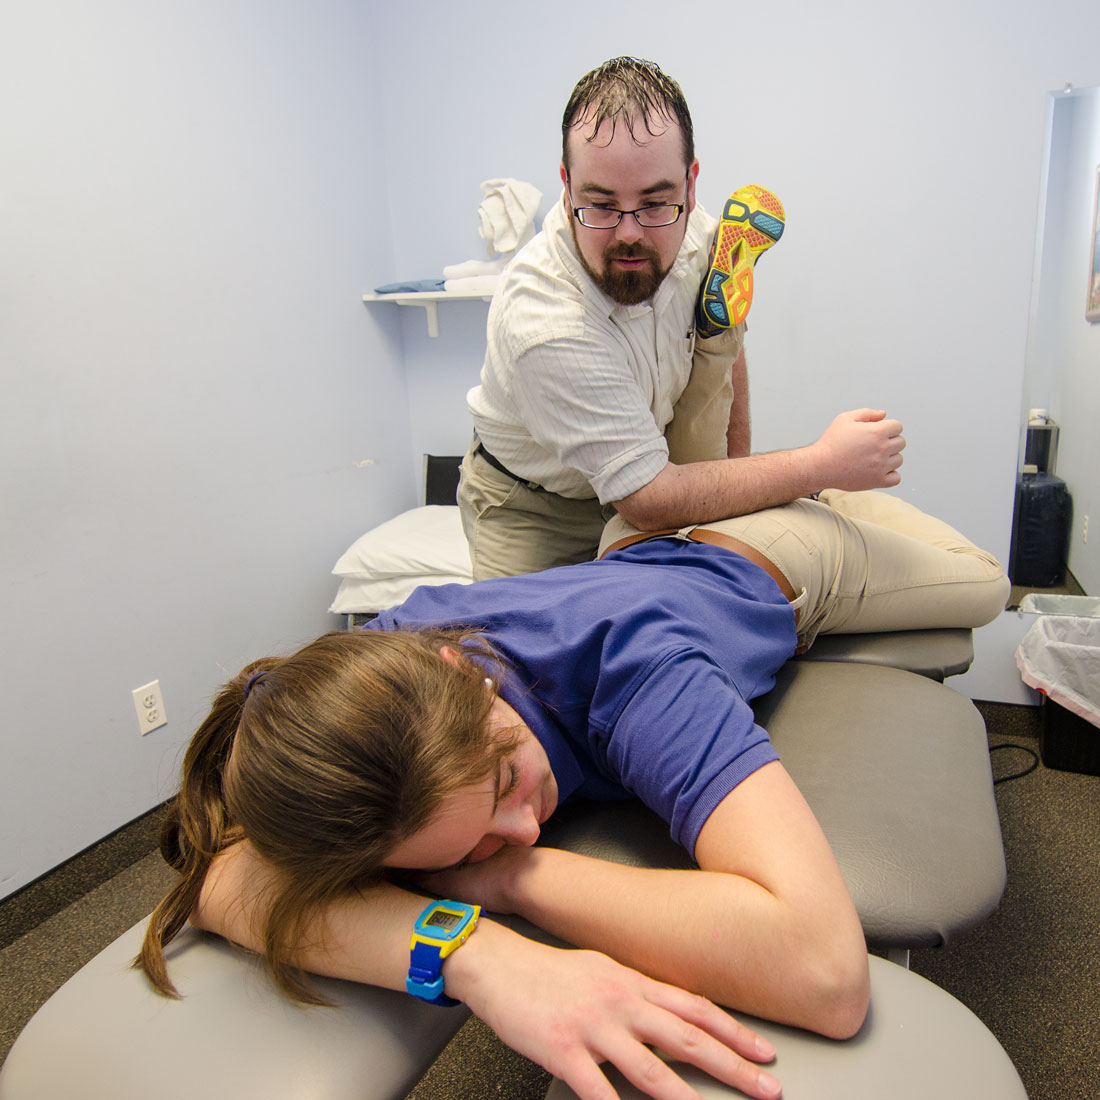 Importance of physical therapy - Spagnoli Physical Therapy Also Emphasizes The Importance Of A Team Approach That Includes The Therapist Doctor Patient And Other Health Care Professionals